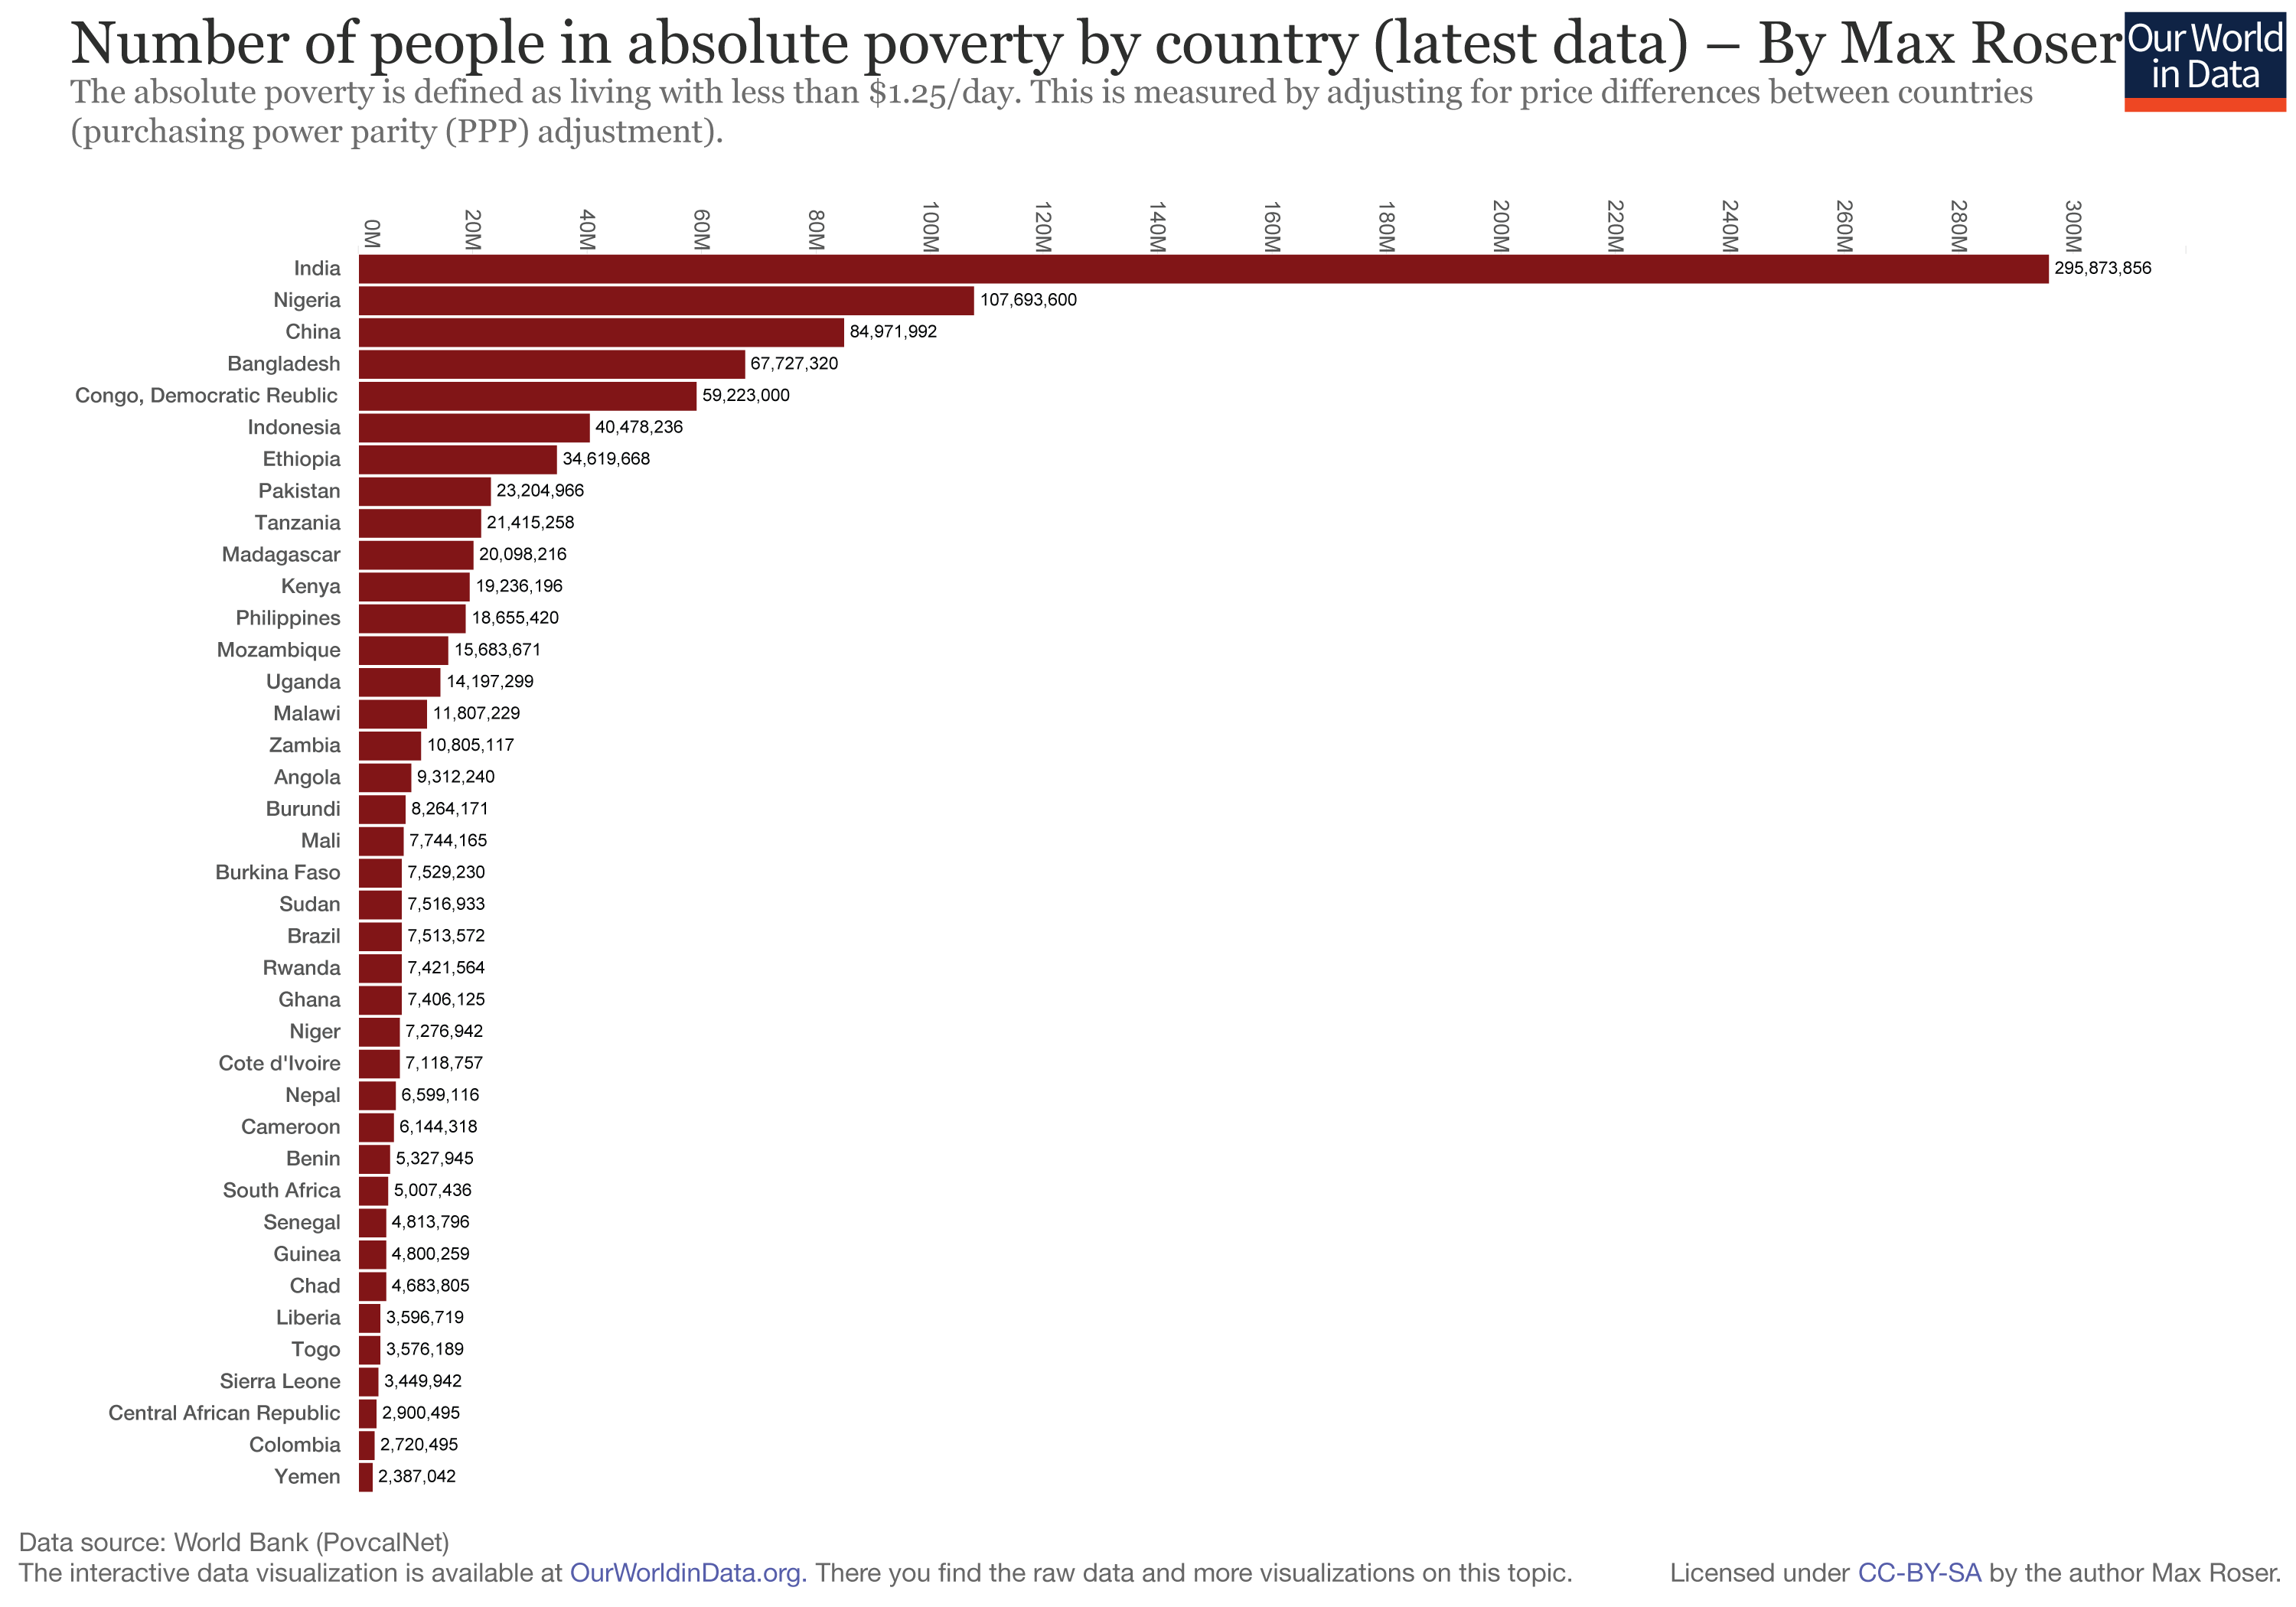 poverty-abolute-number-people